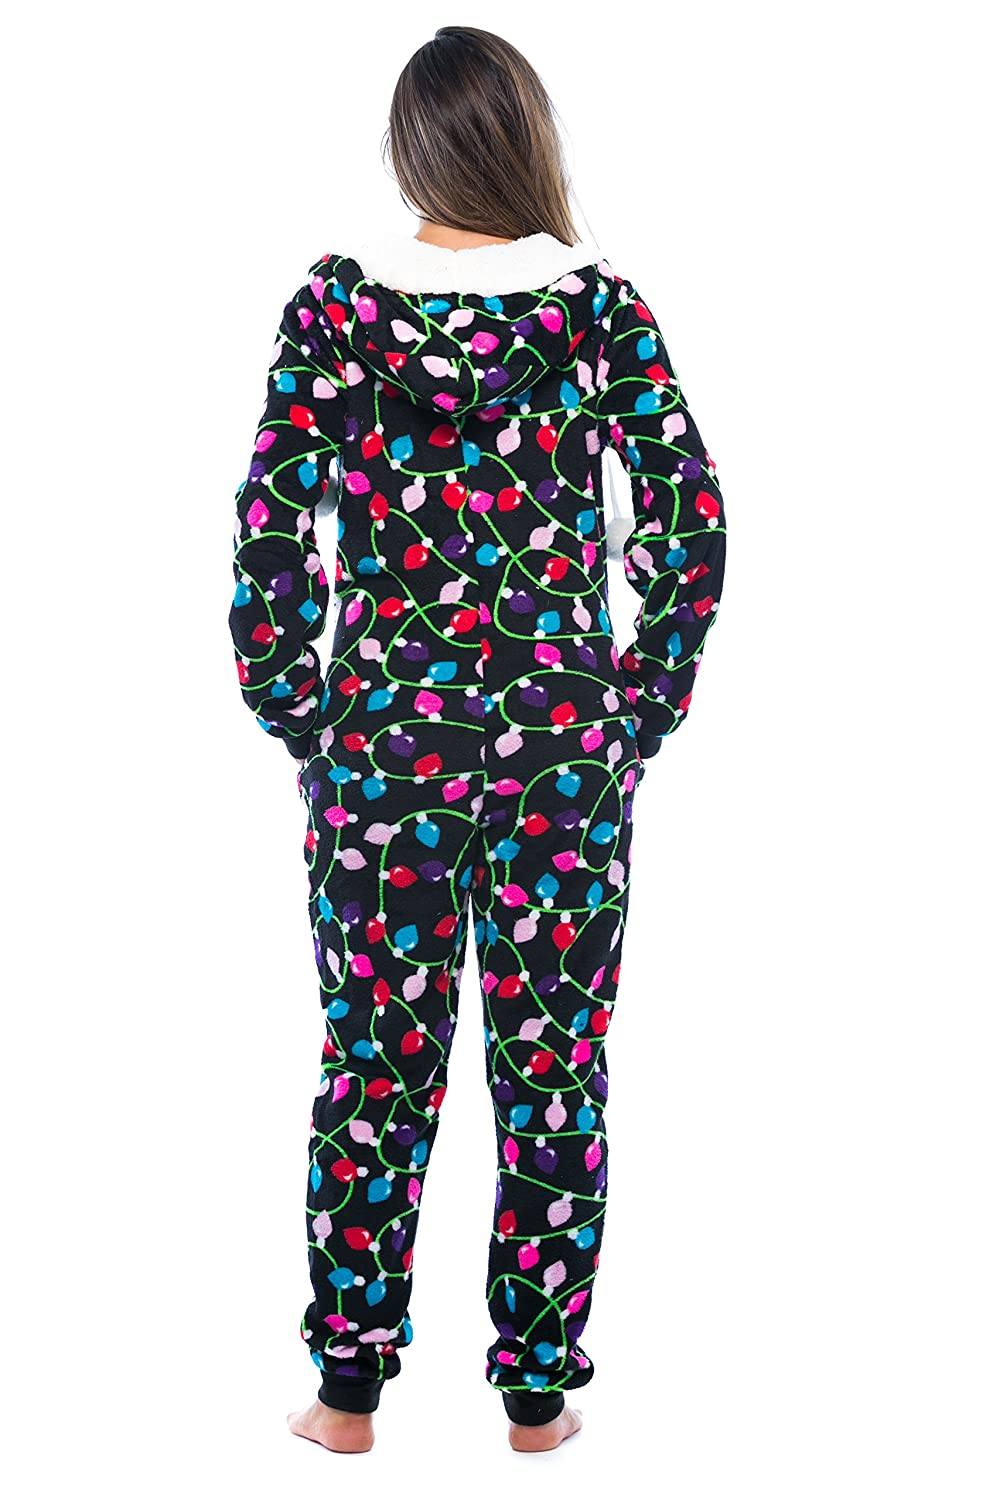 Amazon.com: Just Love Adult Onesie/Pajamas: Clothing